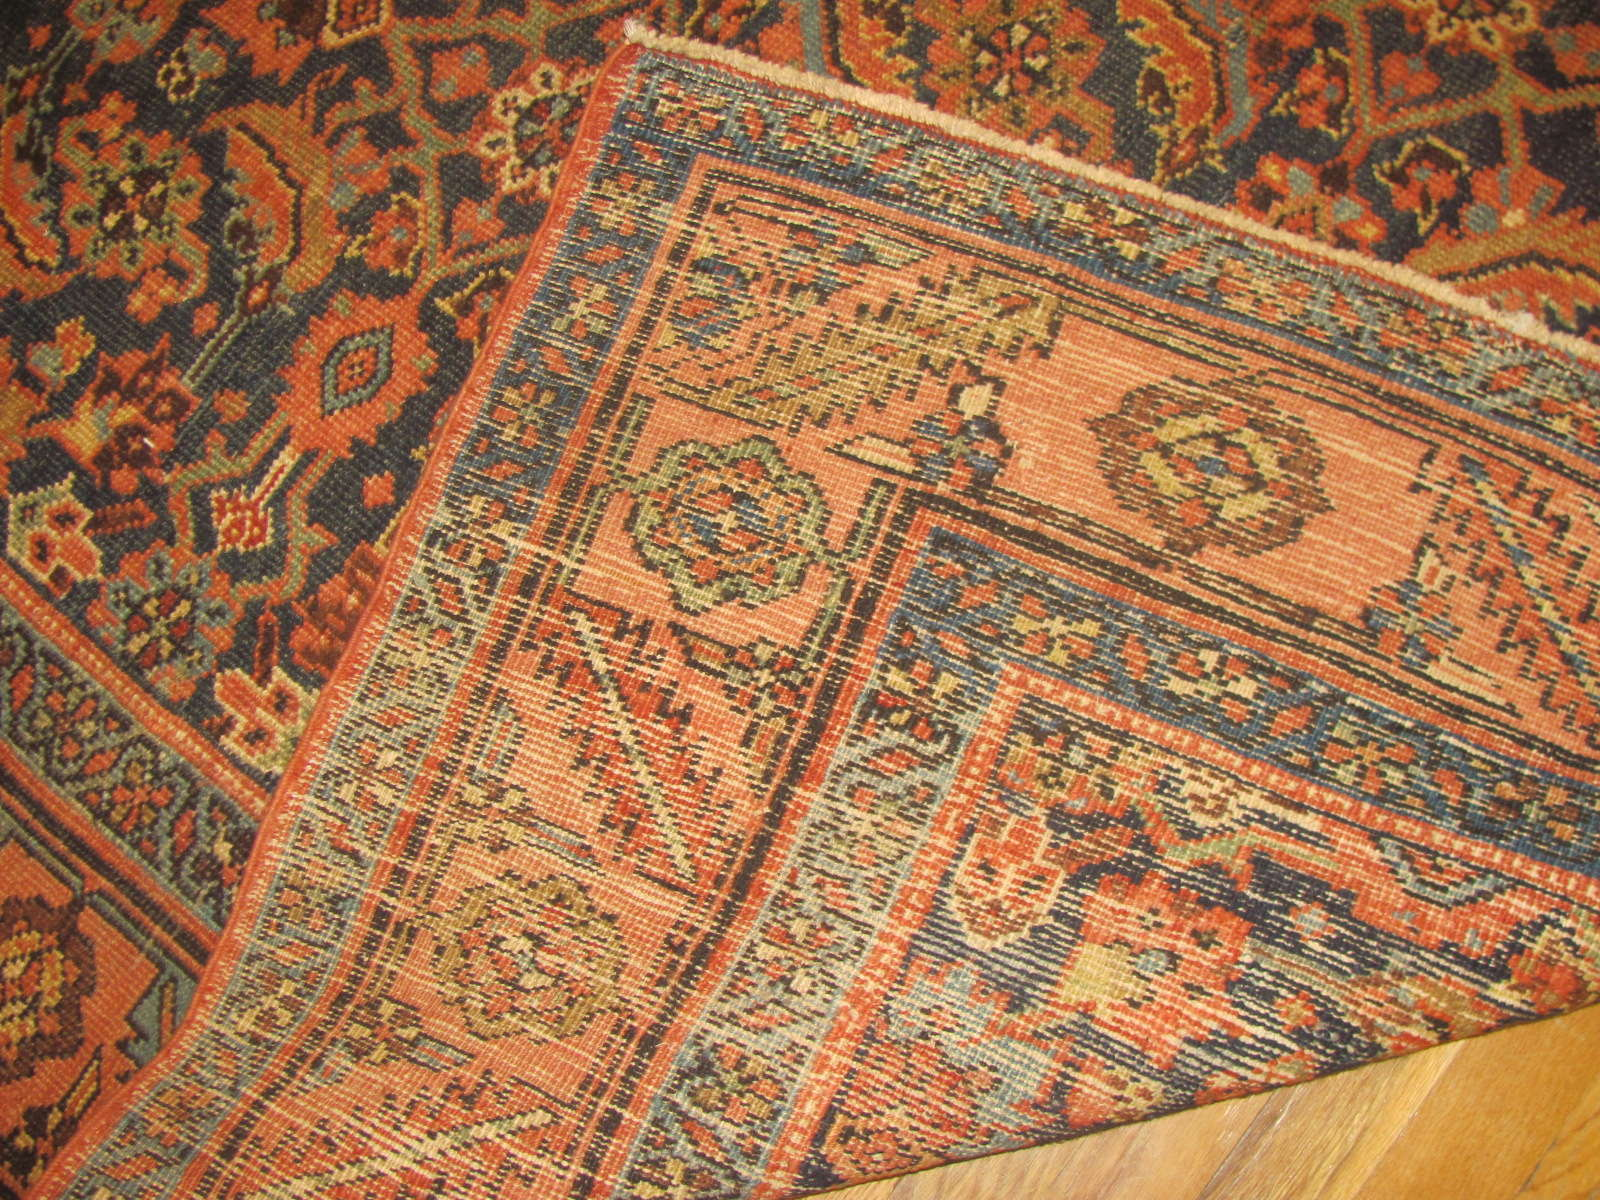 24614 antique persian heriz rug 4,8 x 6,5 -3